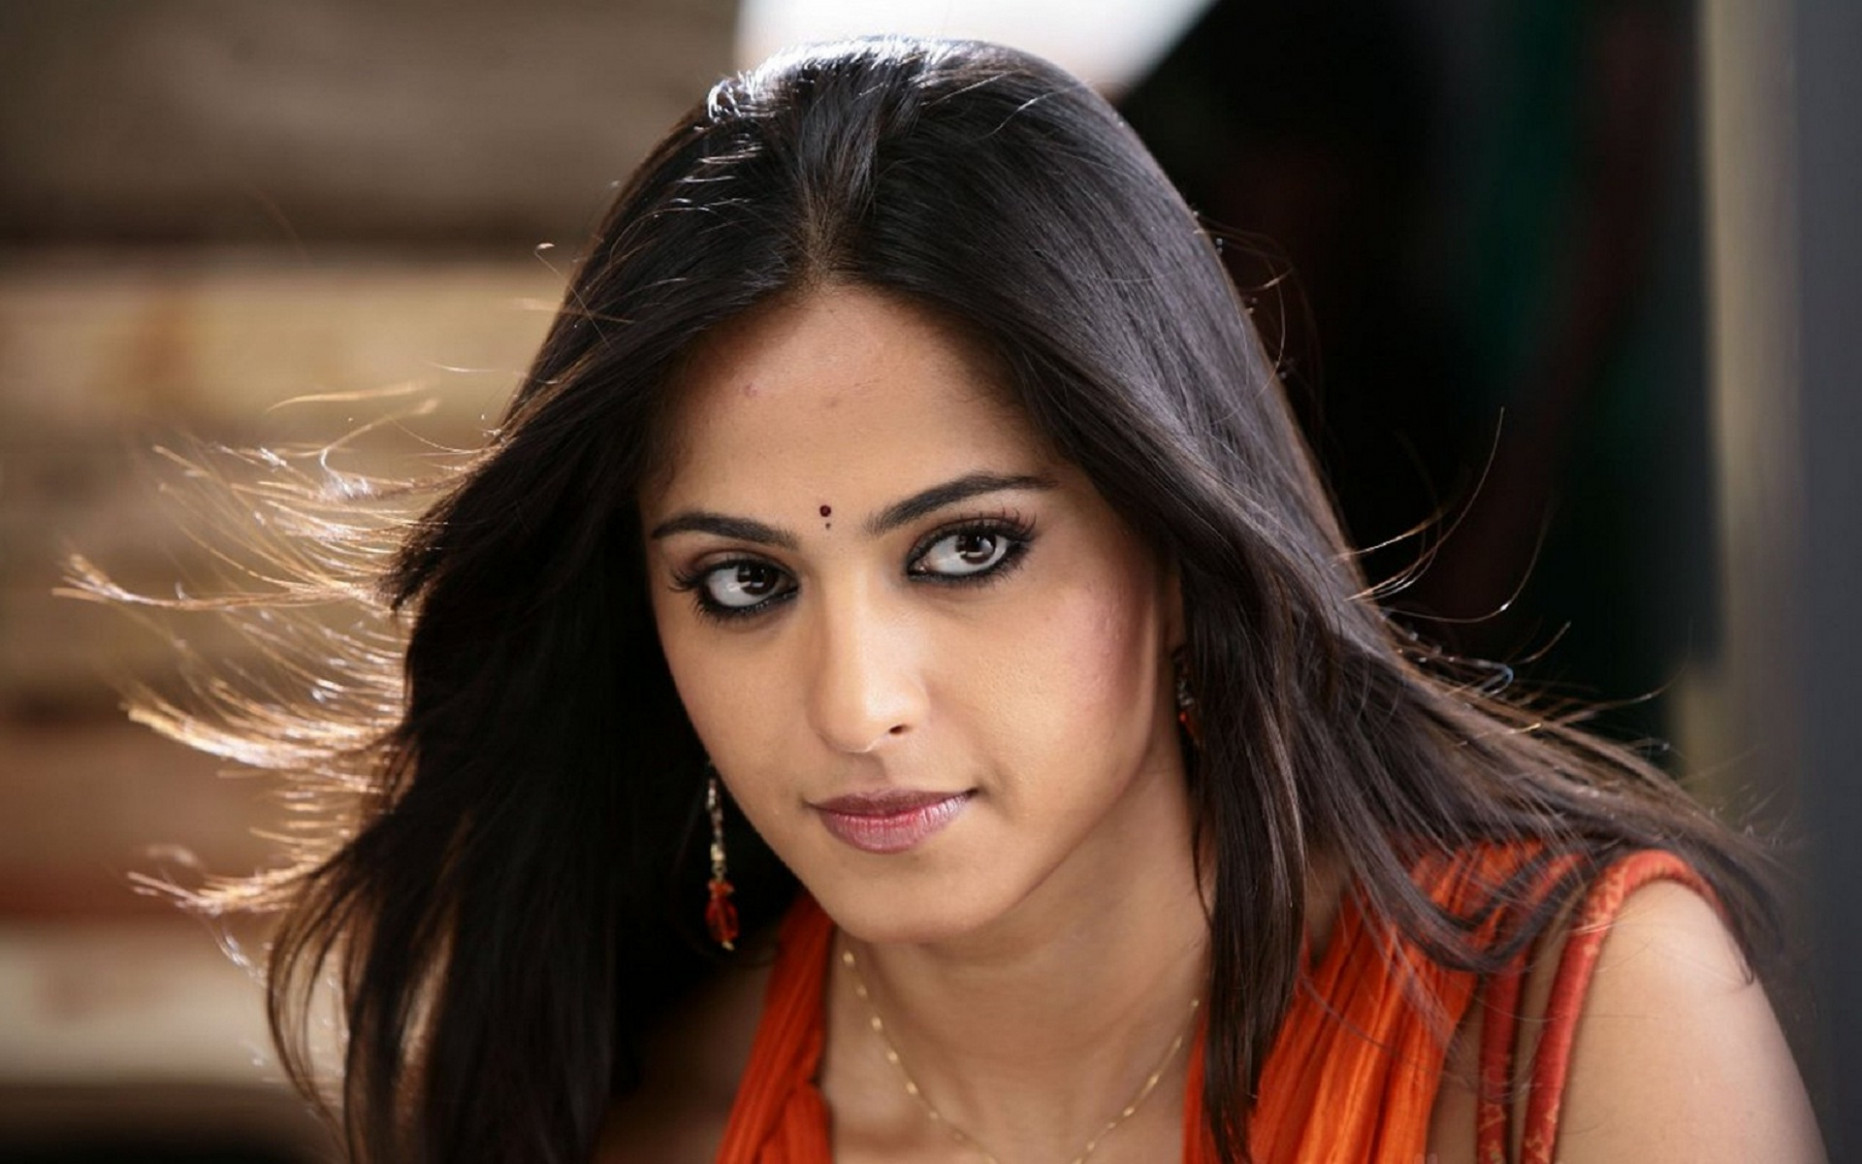 South Indian Girls Wallpapers - HD